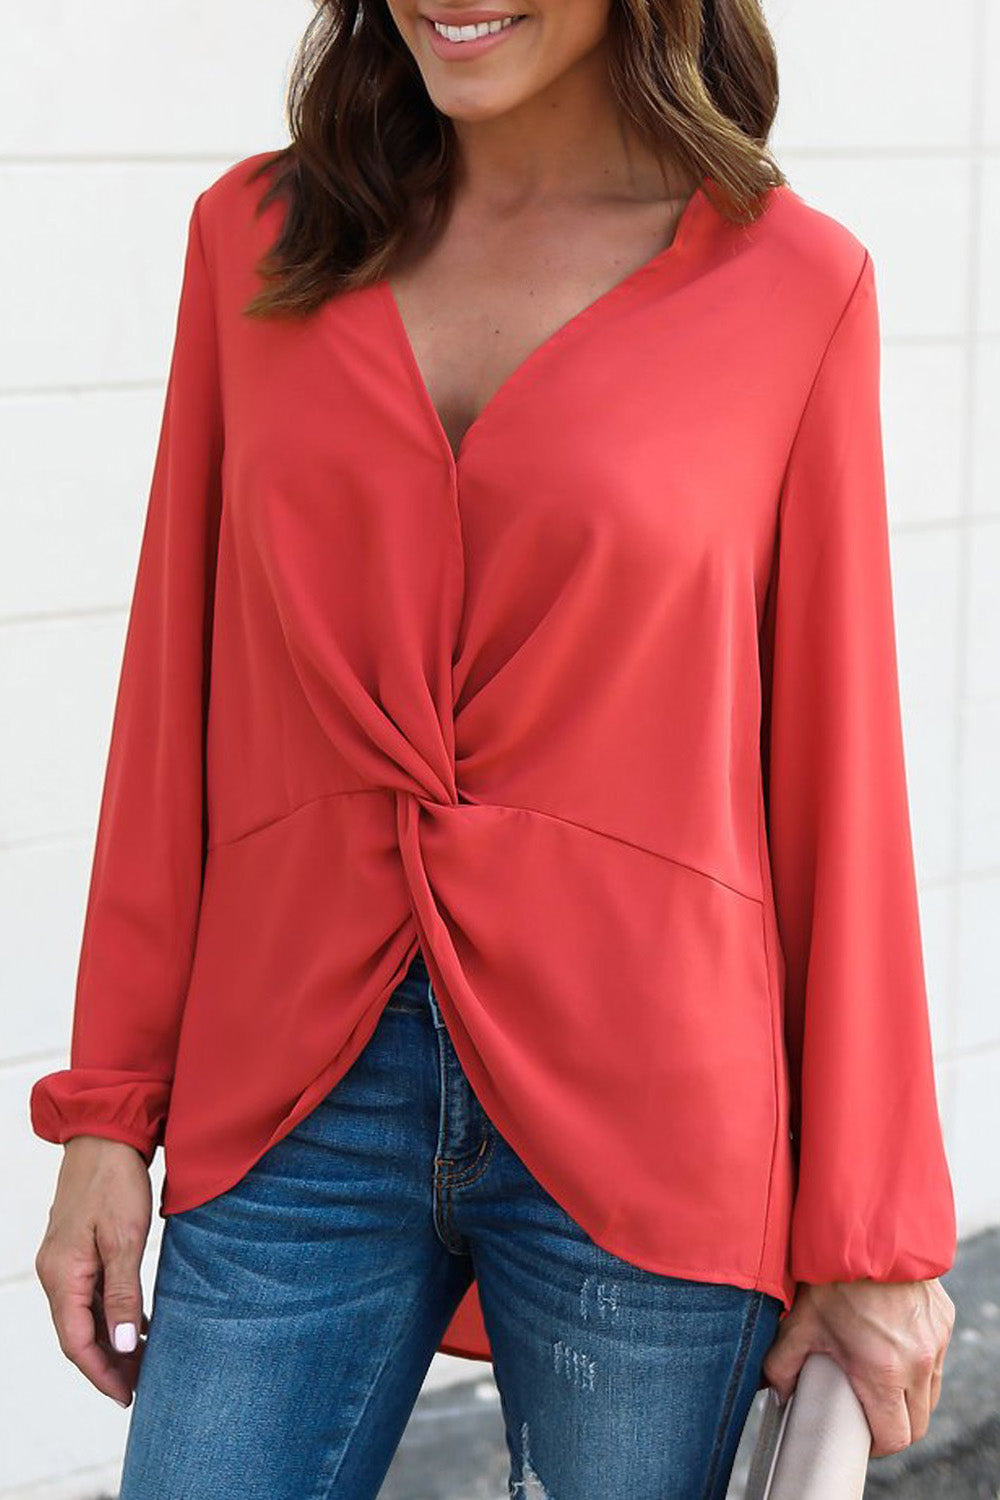 Red Long Sleeve Twist Front Slit Blouse Long Sleeve Tops Discount Designer Fashion Clothes Shoes Bags Women Men Kids Children Black Owned Business